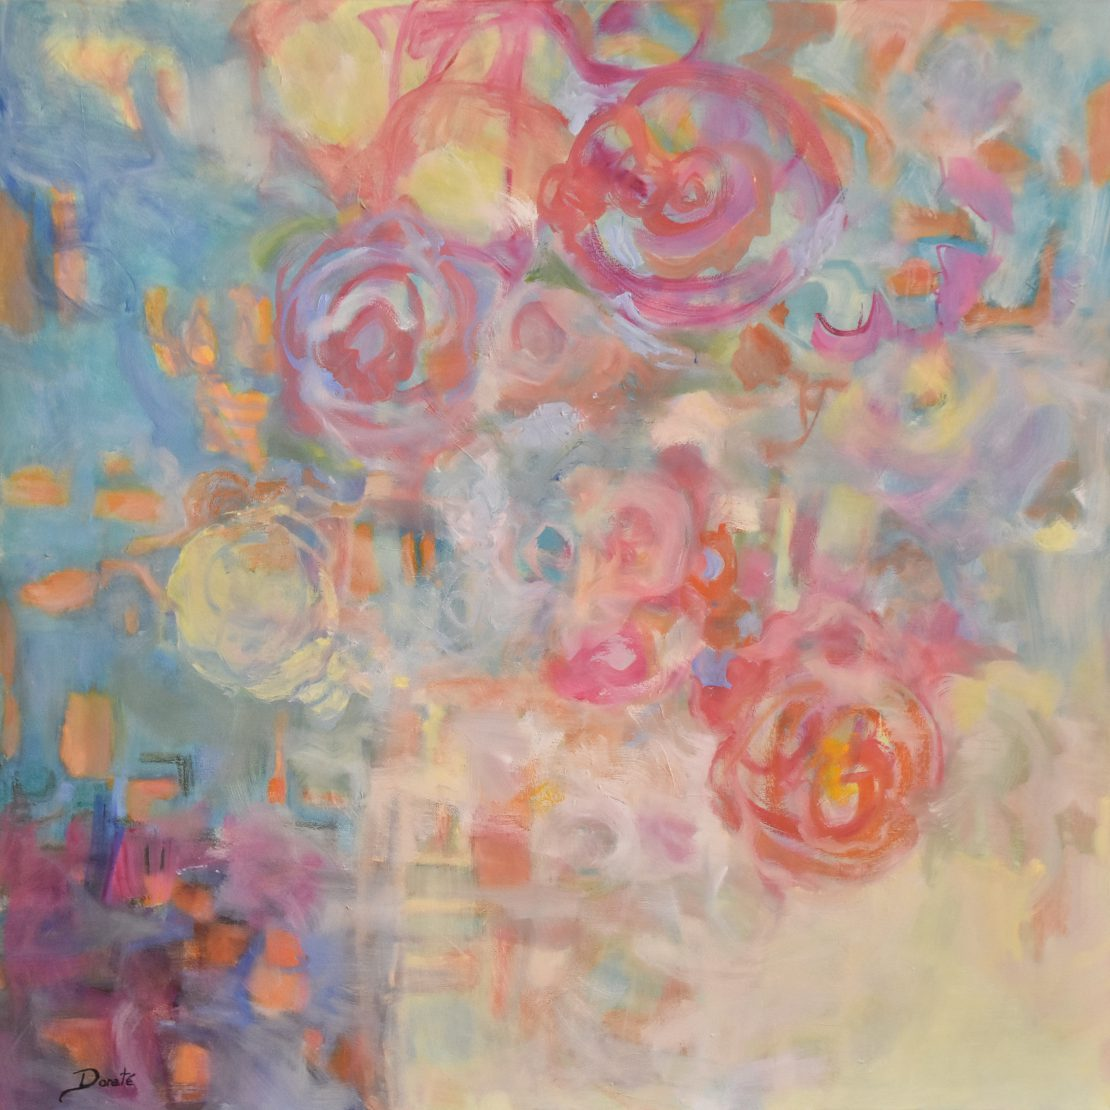 """Original Abstract Artwork by Dorate, """"Big Flowers"""""""